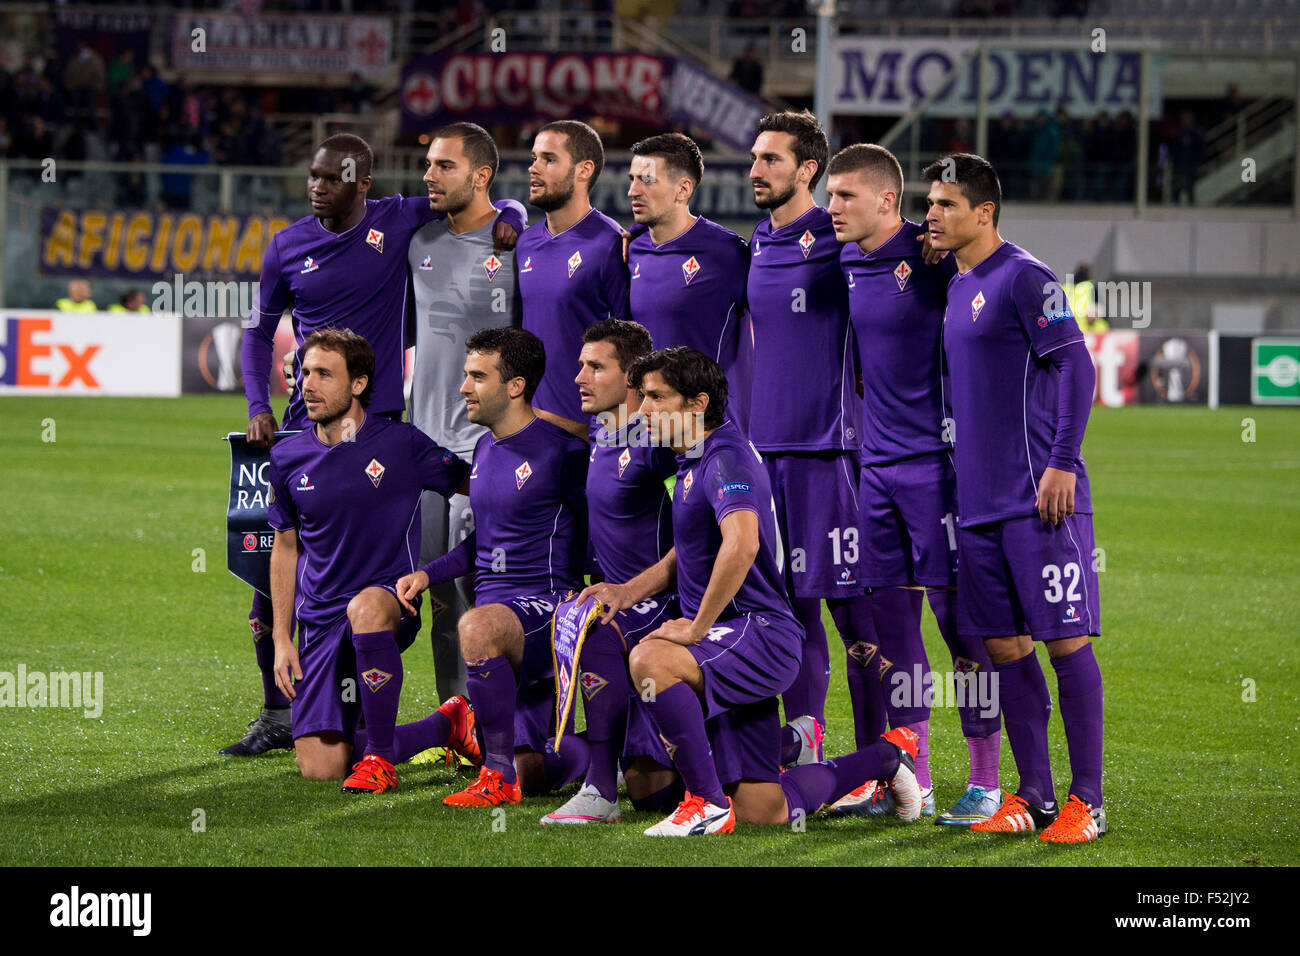 Florence Italy 22nd Oct 2015 Fiorentina Team Group Line Up Stock Photo Alamy